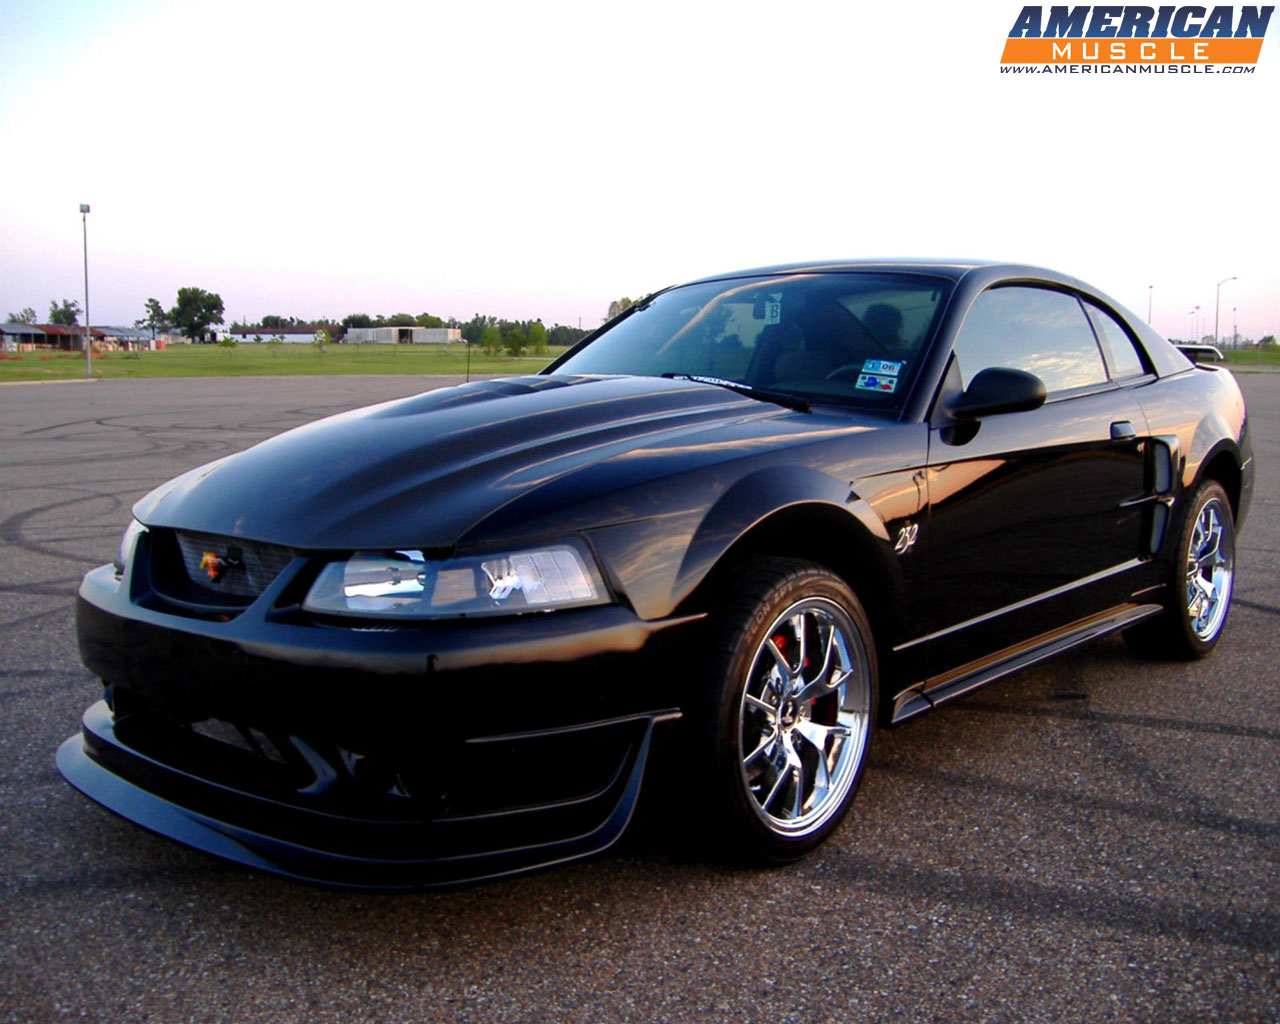 Ford Mustang Wallpapers 1280x1024